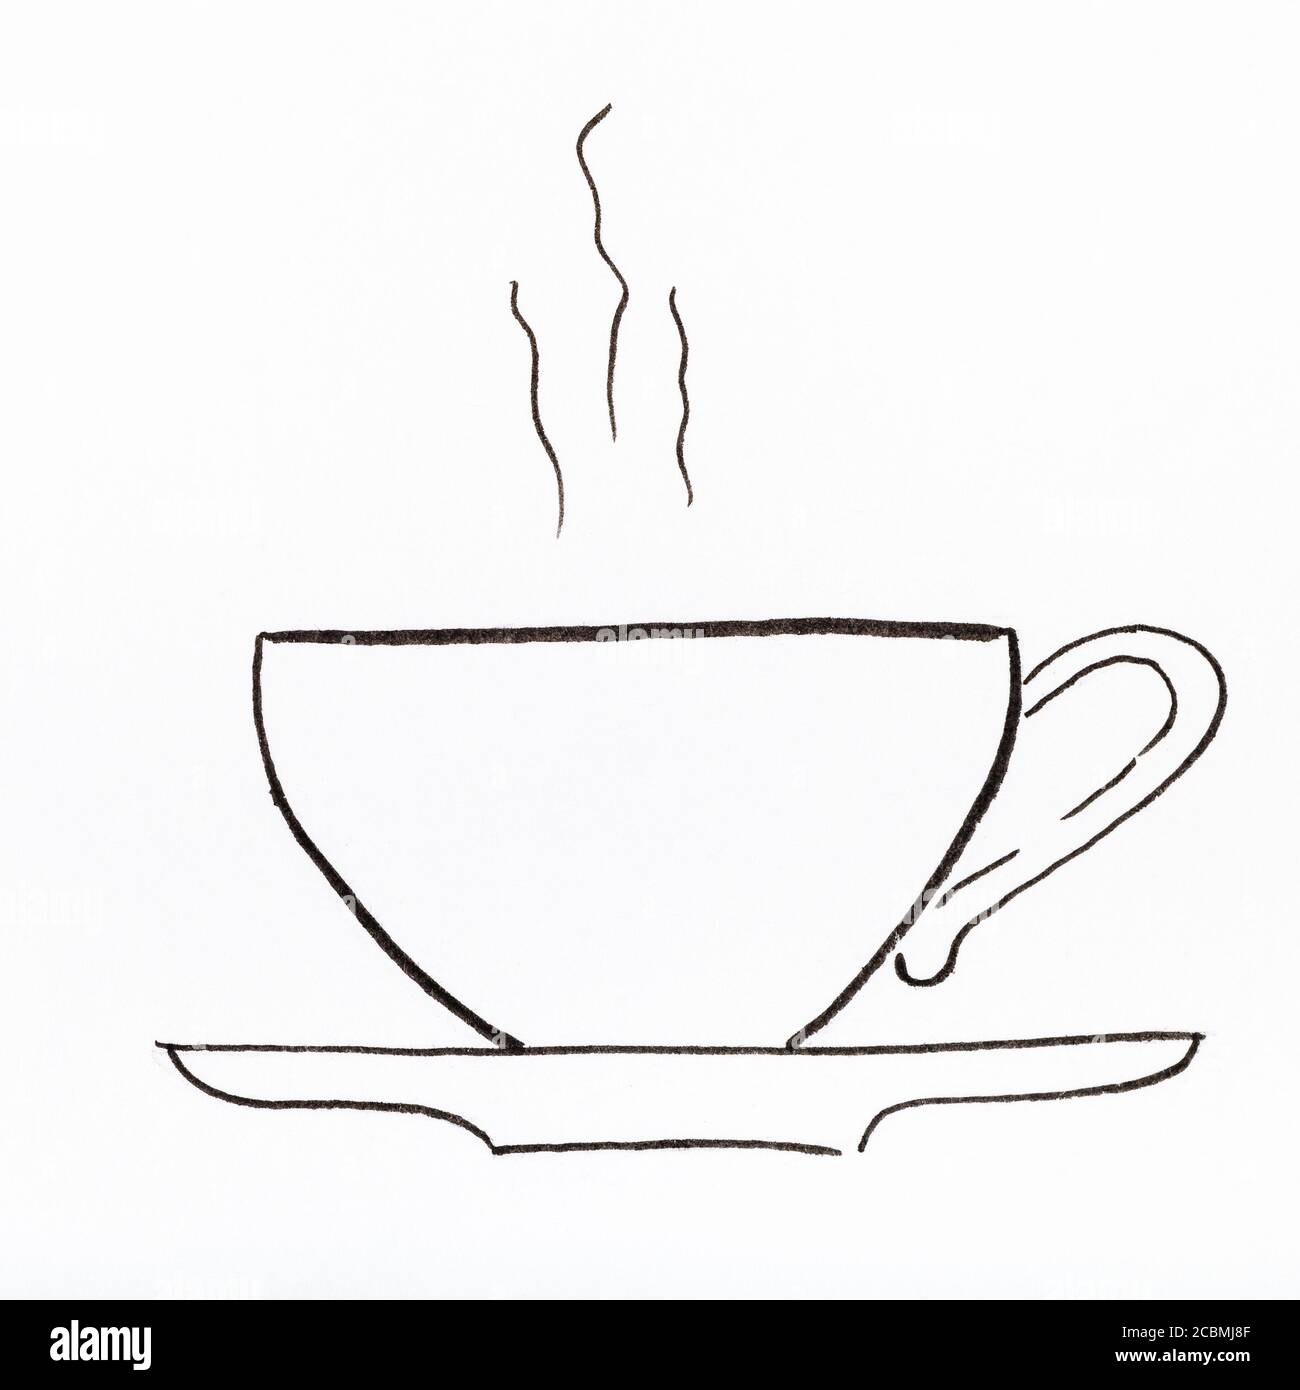 Sketch Of Side View Of Tea Cup And Saucer Hand Drawn By Black Felt Tip Pen On White Paper Stock Photo Alamy